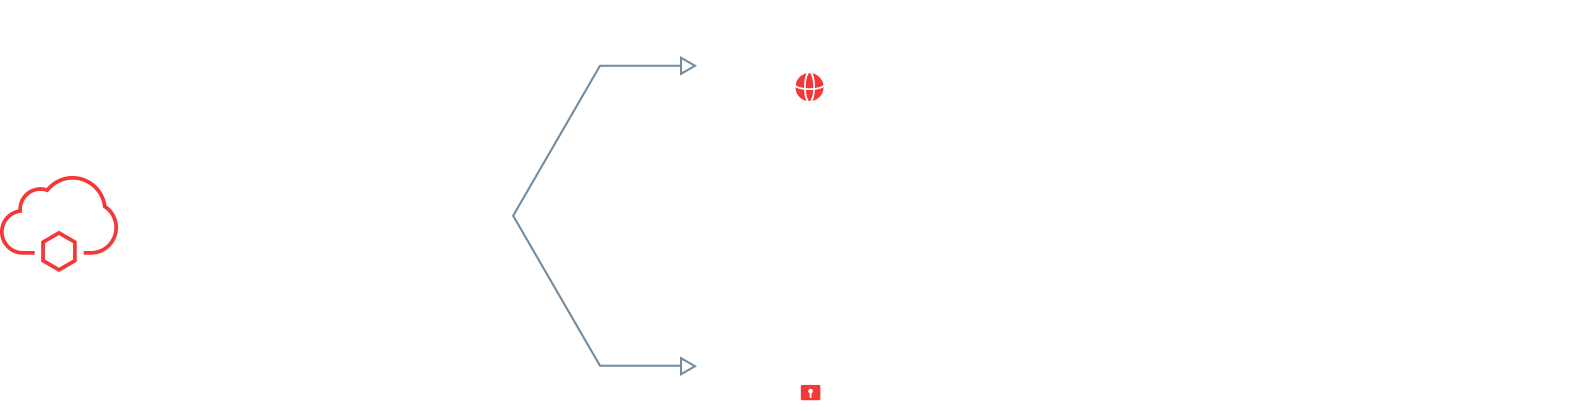 You can decide for yourself whether you want to pave your way to digital transformation in the public or private cloud.